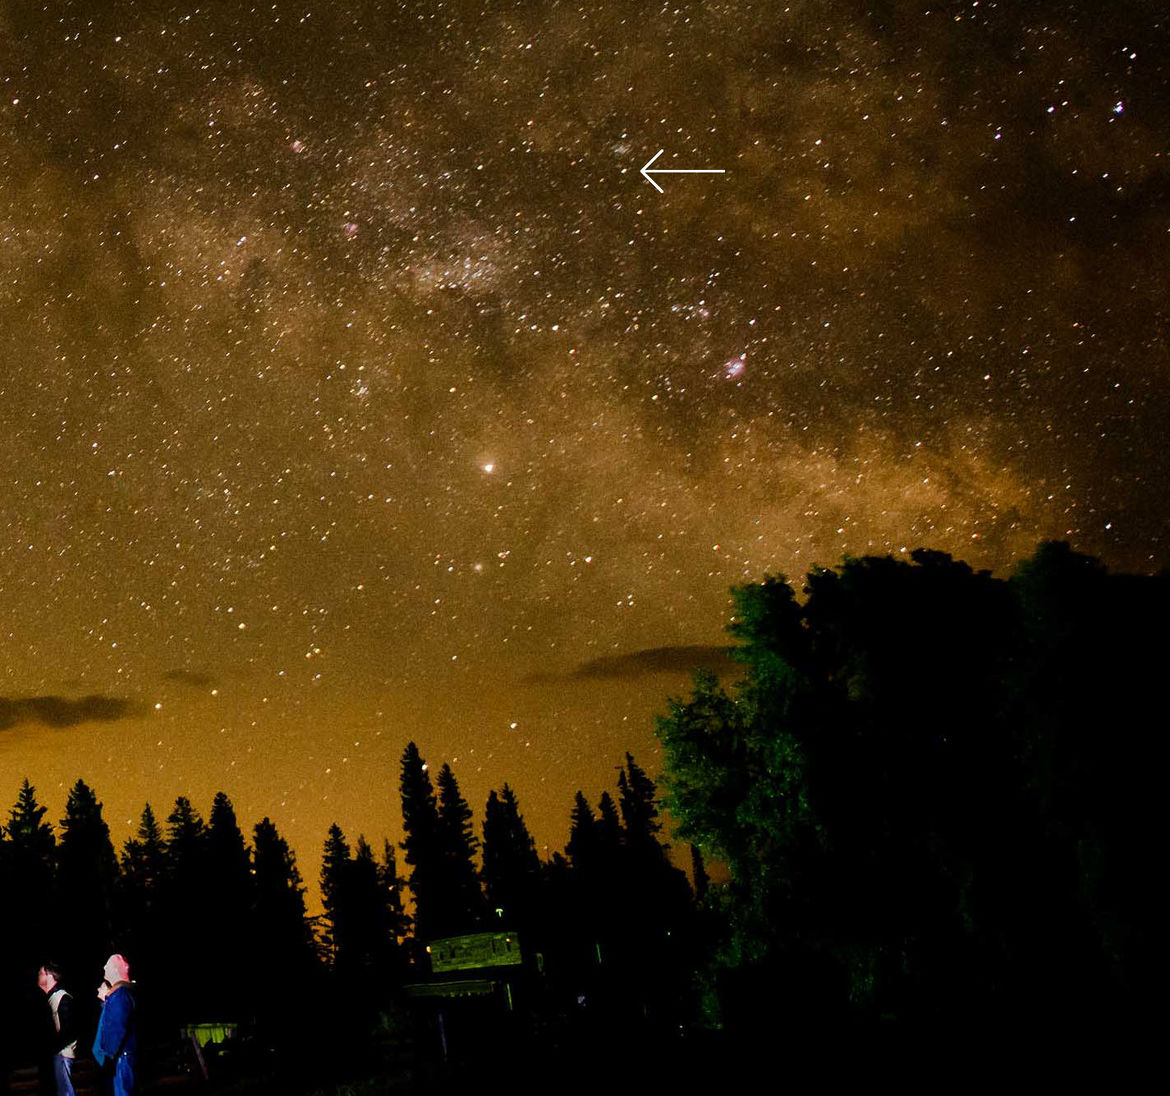 The night sky from rural Colorado, showing the Milky Way, some folks gathered 'round a telescope (that's me on the right), and the protoplanet Vesta (arrowed). Credit: Michele Wedel